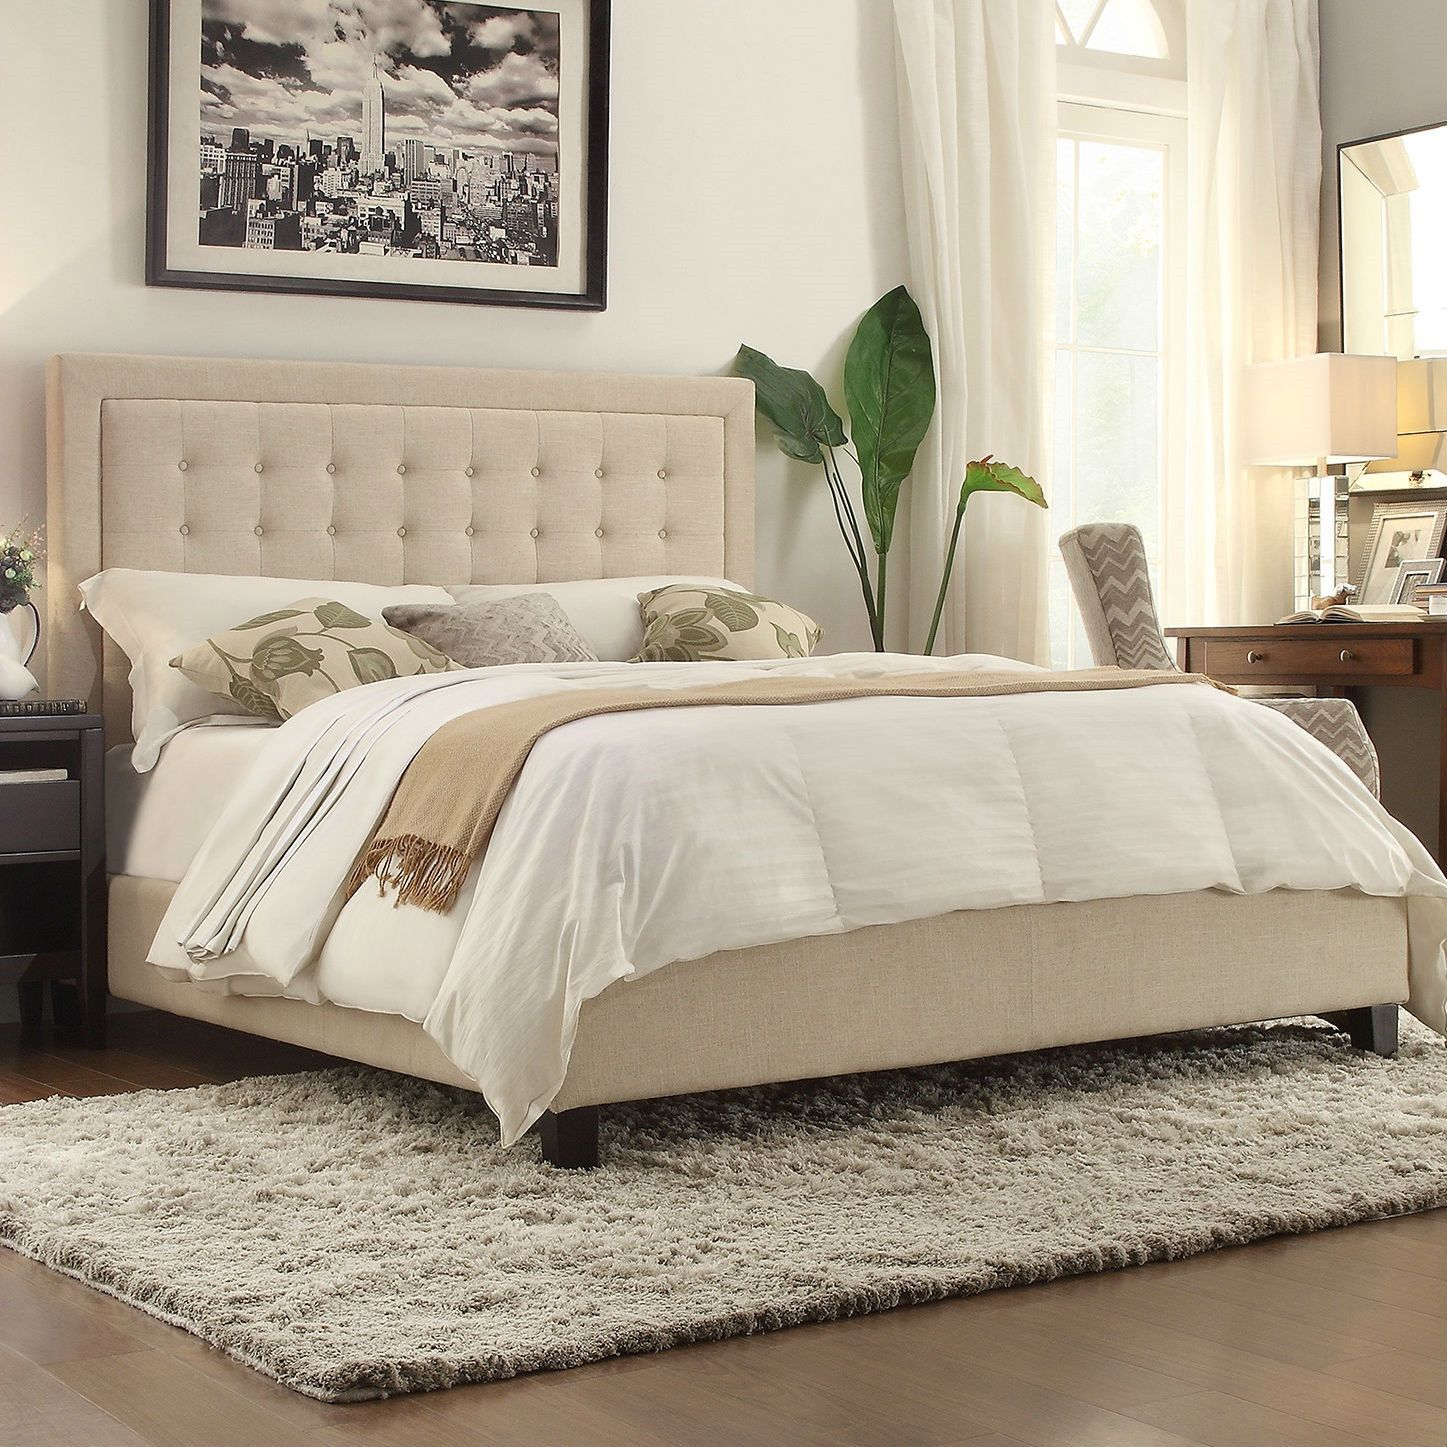 Best King Size Beige Upholstered Bed With Button Tufted 400 x 300